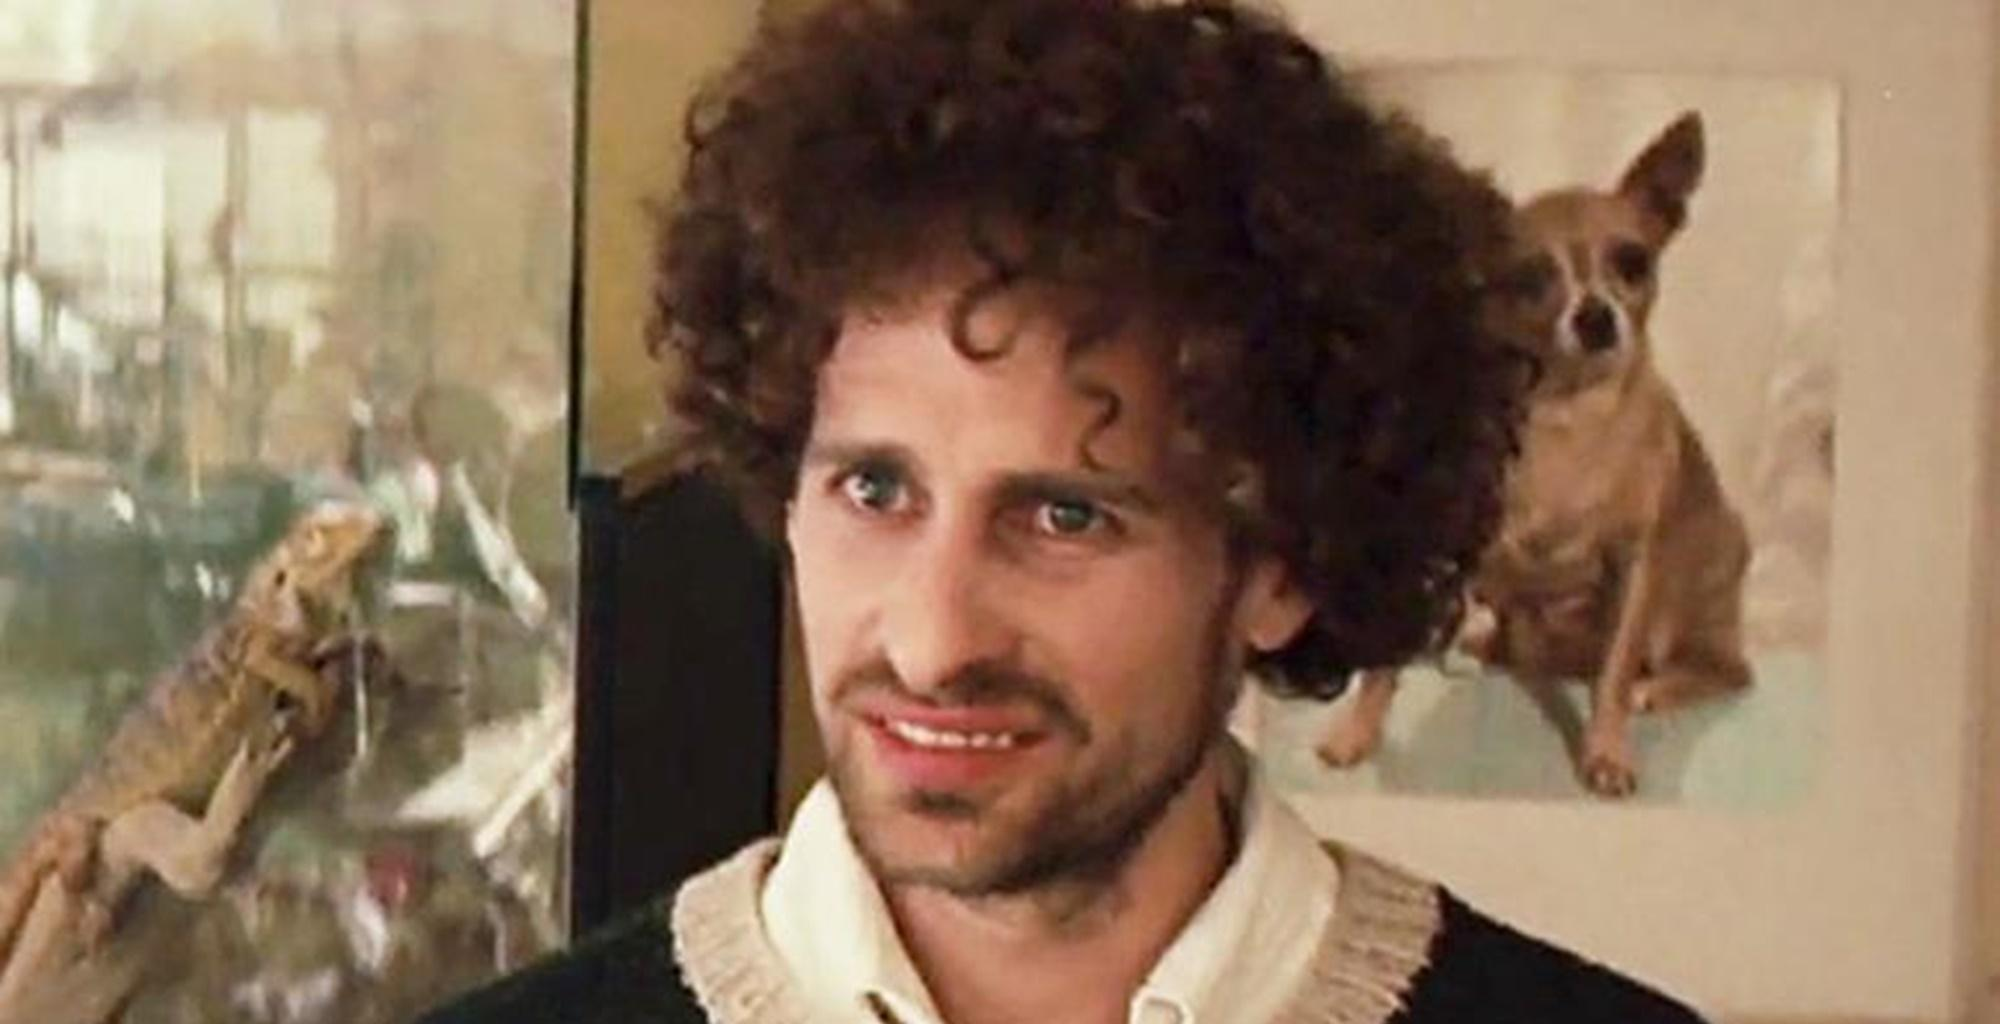 Isaac Kappy, The Man Accused Of Choking Paris Jackson, Commits Suicide -- Some People On Social Media Are Looking For Answers And Think There Is More To The Story